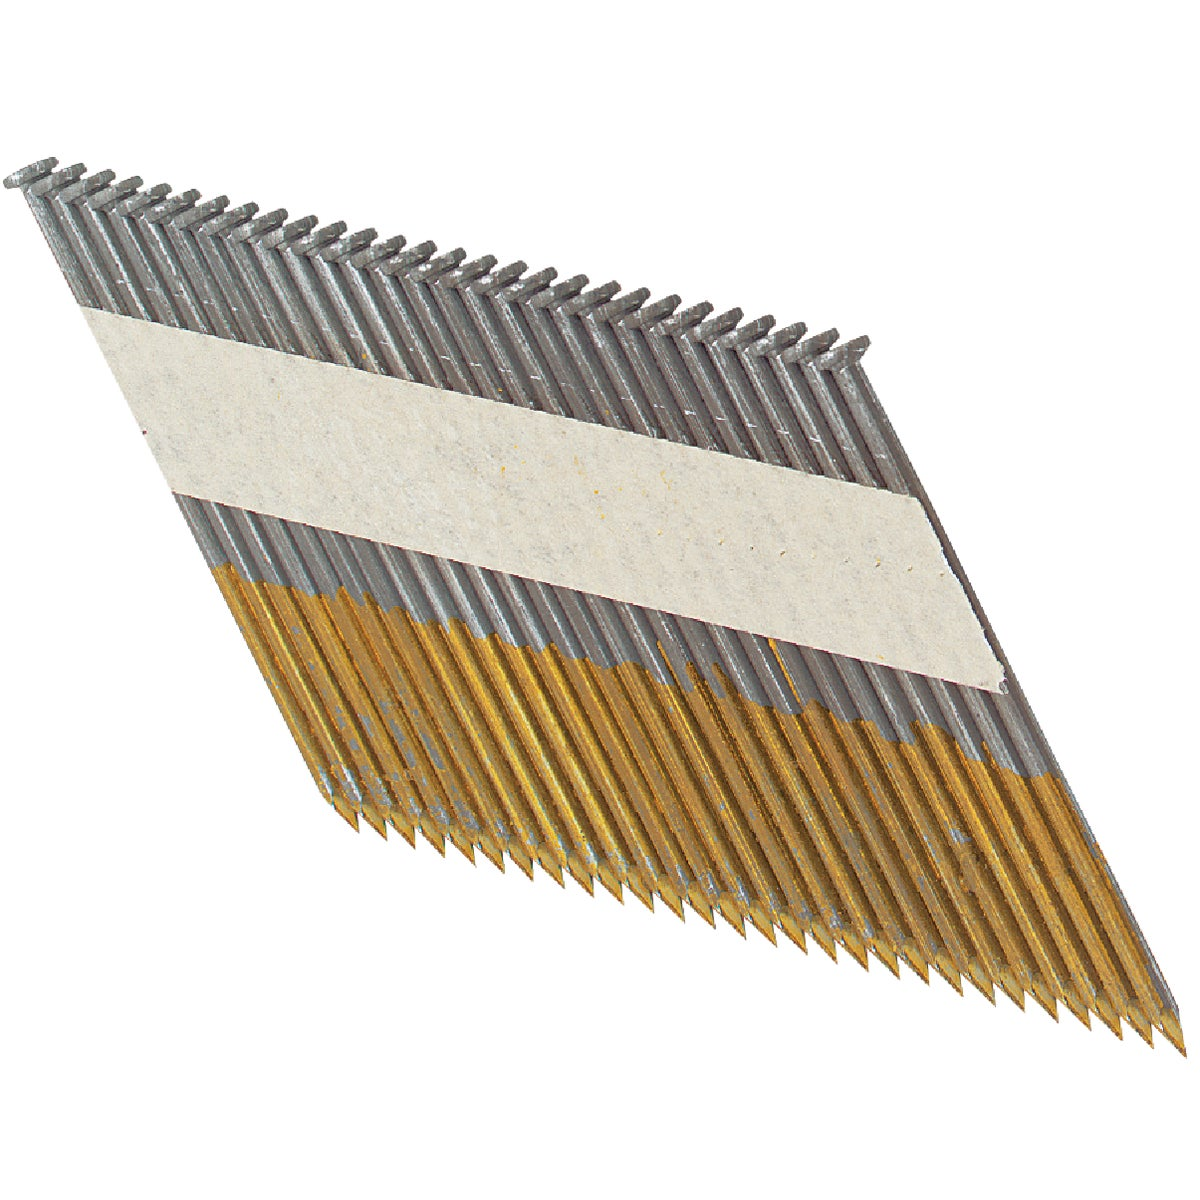 3-1/4X.131 33 PAPER NAIL - GRP12ZH1 by Prime Source Pneumat